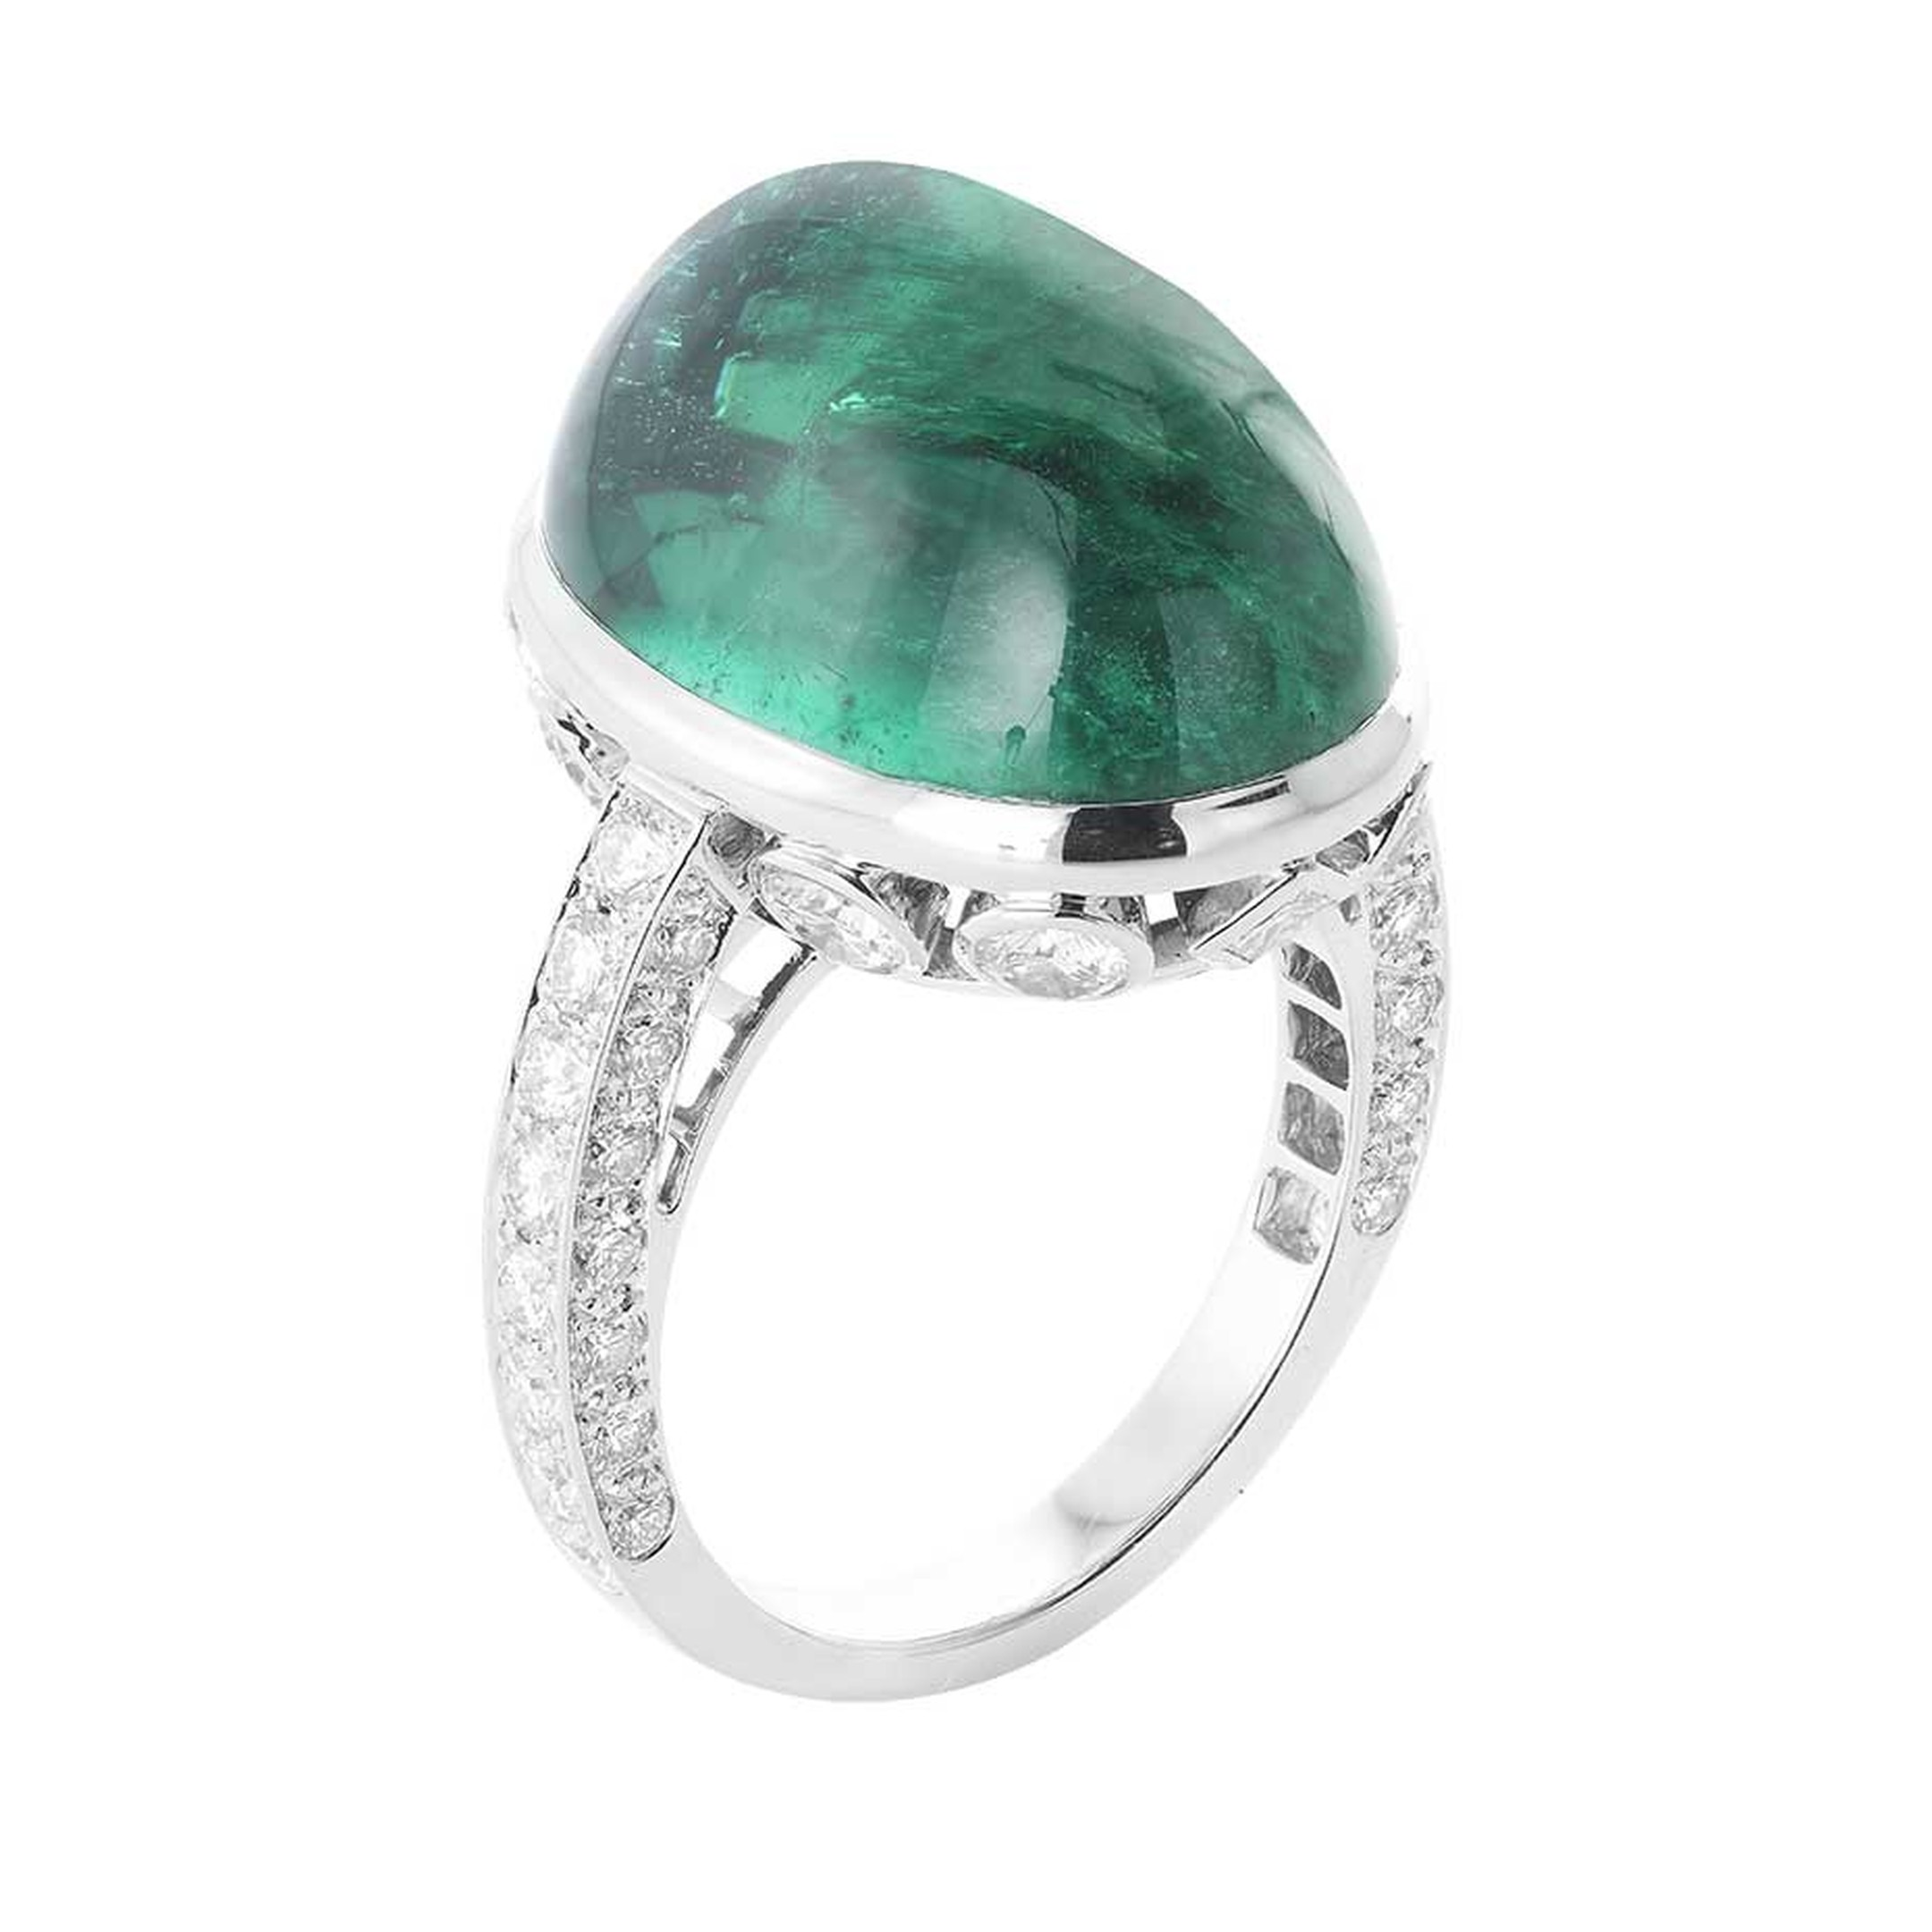 Boucheron Indian Palace ring, set with an emerald cabochon and diamonds.